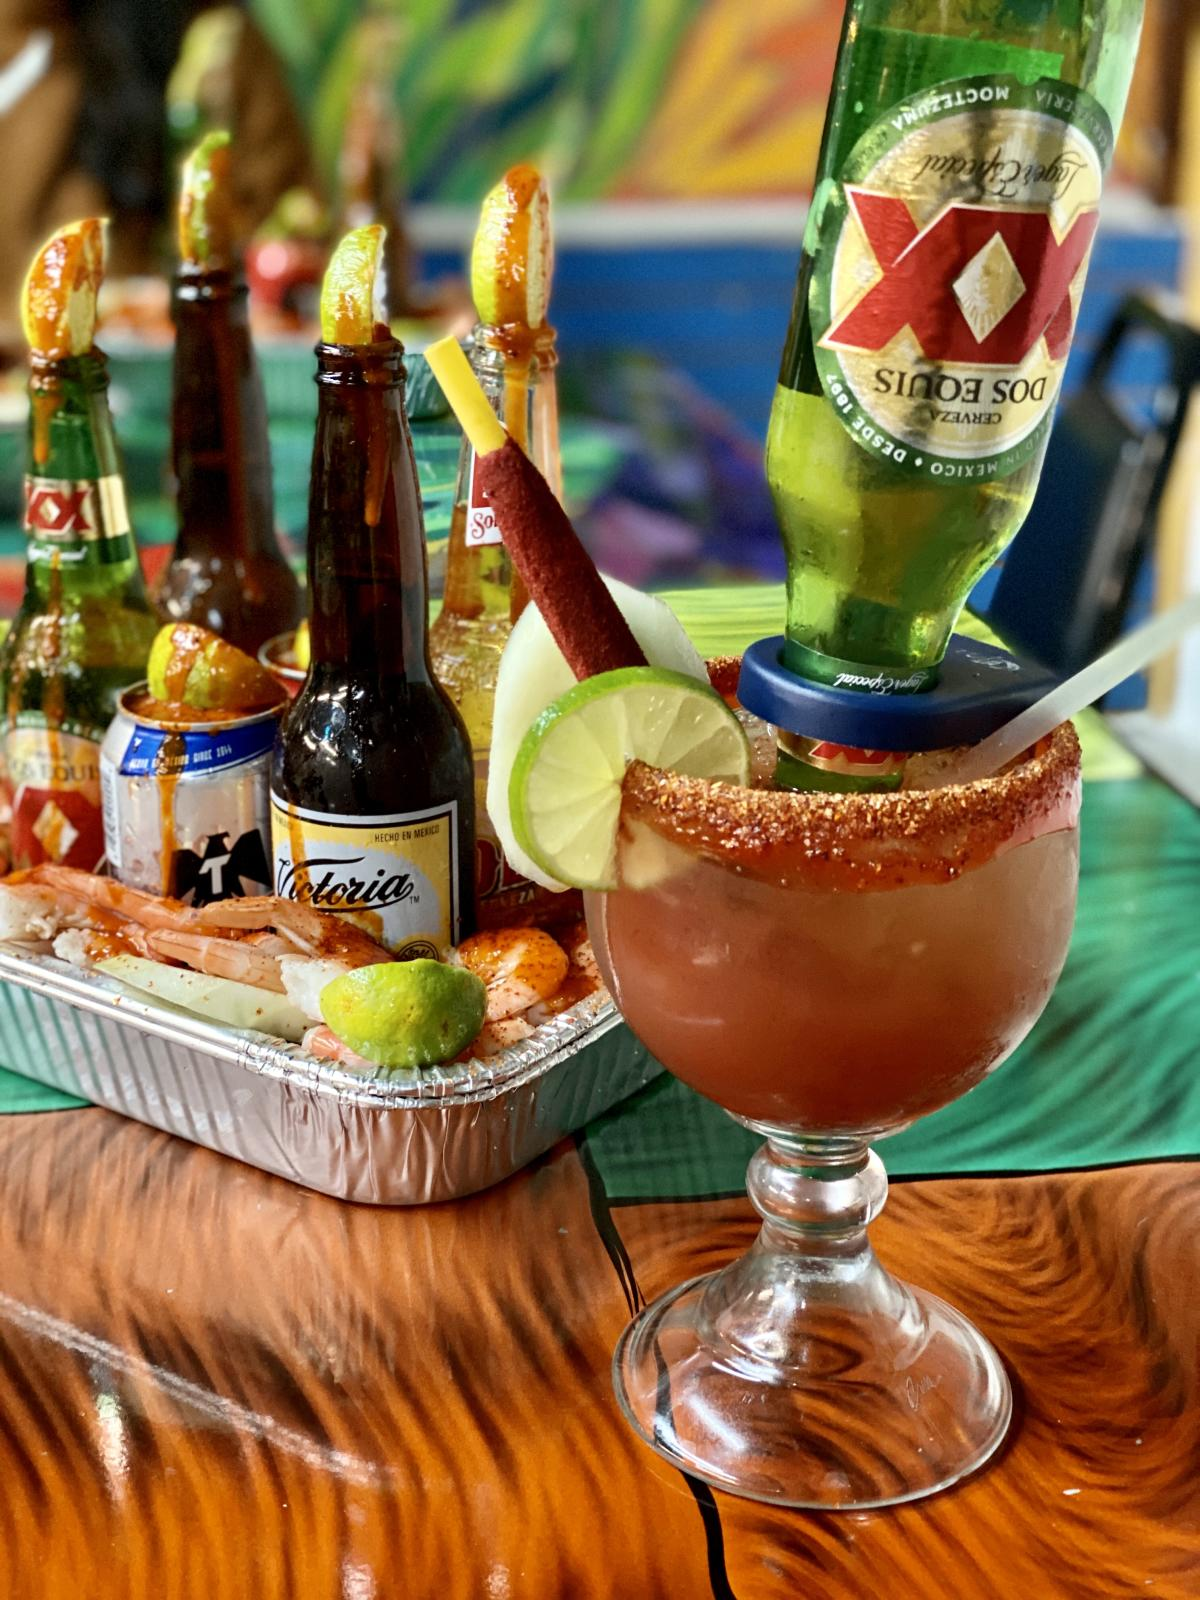 Food and Drinks From Tacos La Bamba In Beaumont, TX